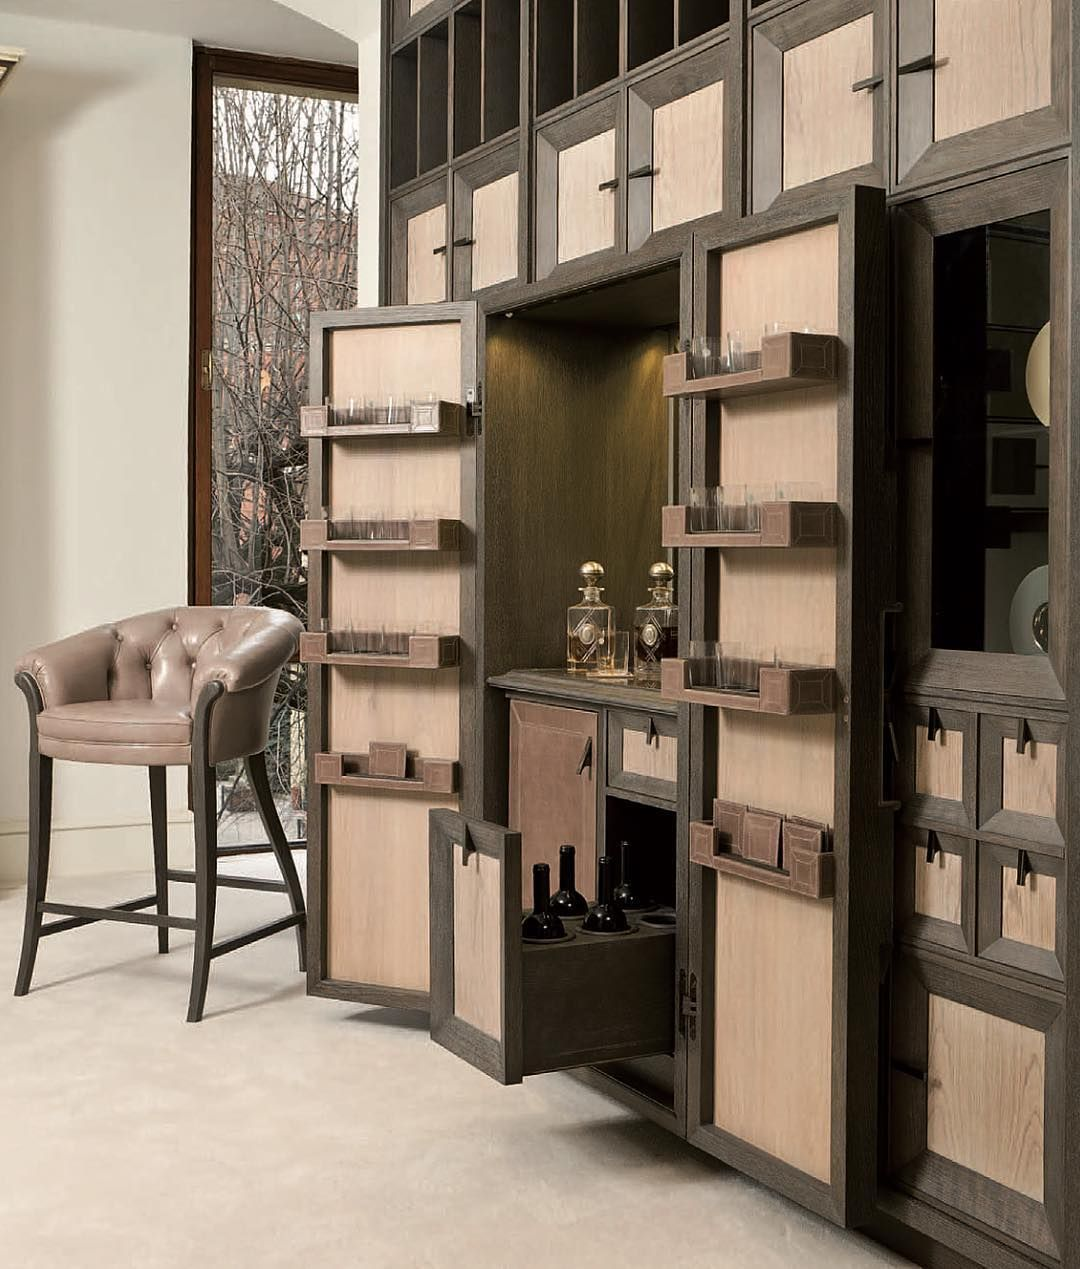 Annibale Colombo's New Quadro system is a dream of bespoke